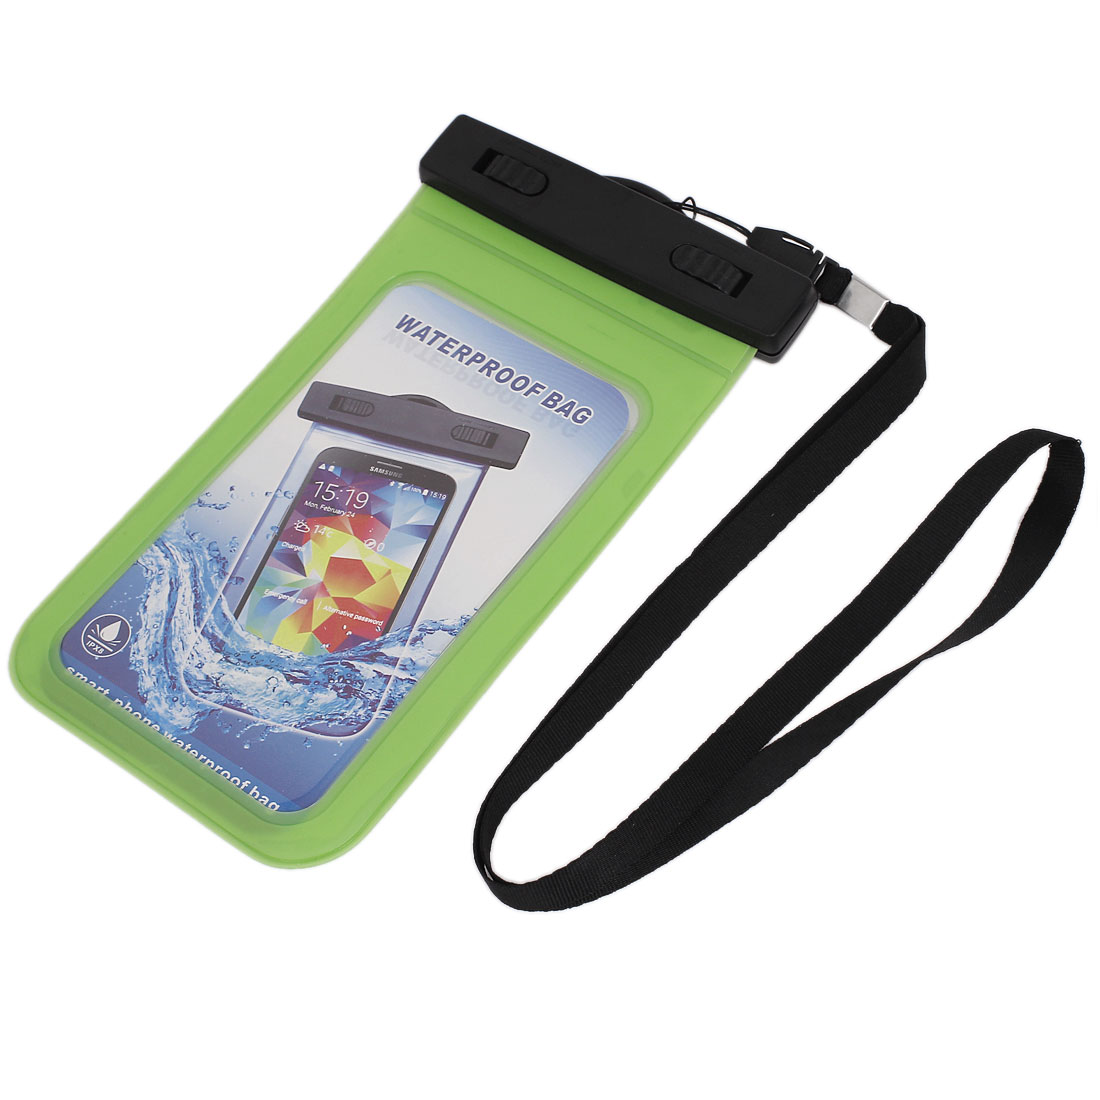 Unique Bargains Waterproof Bag Holder Pouch Green for 5.5  Mobile Phone w Neck Strap